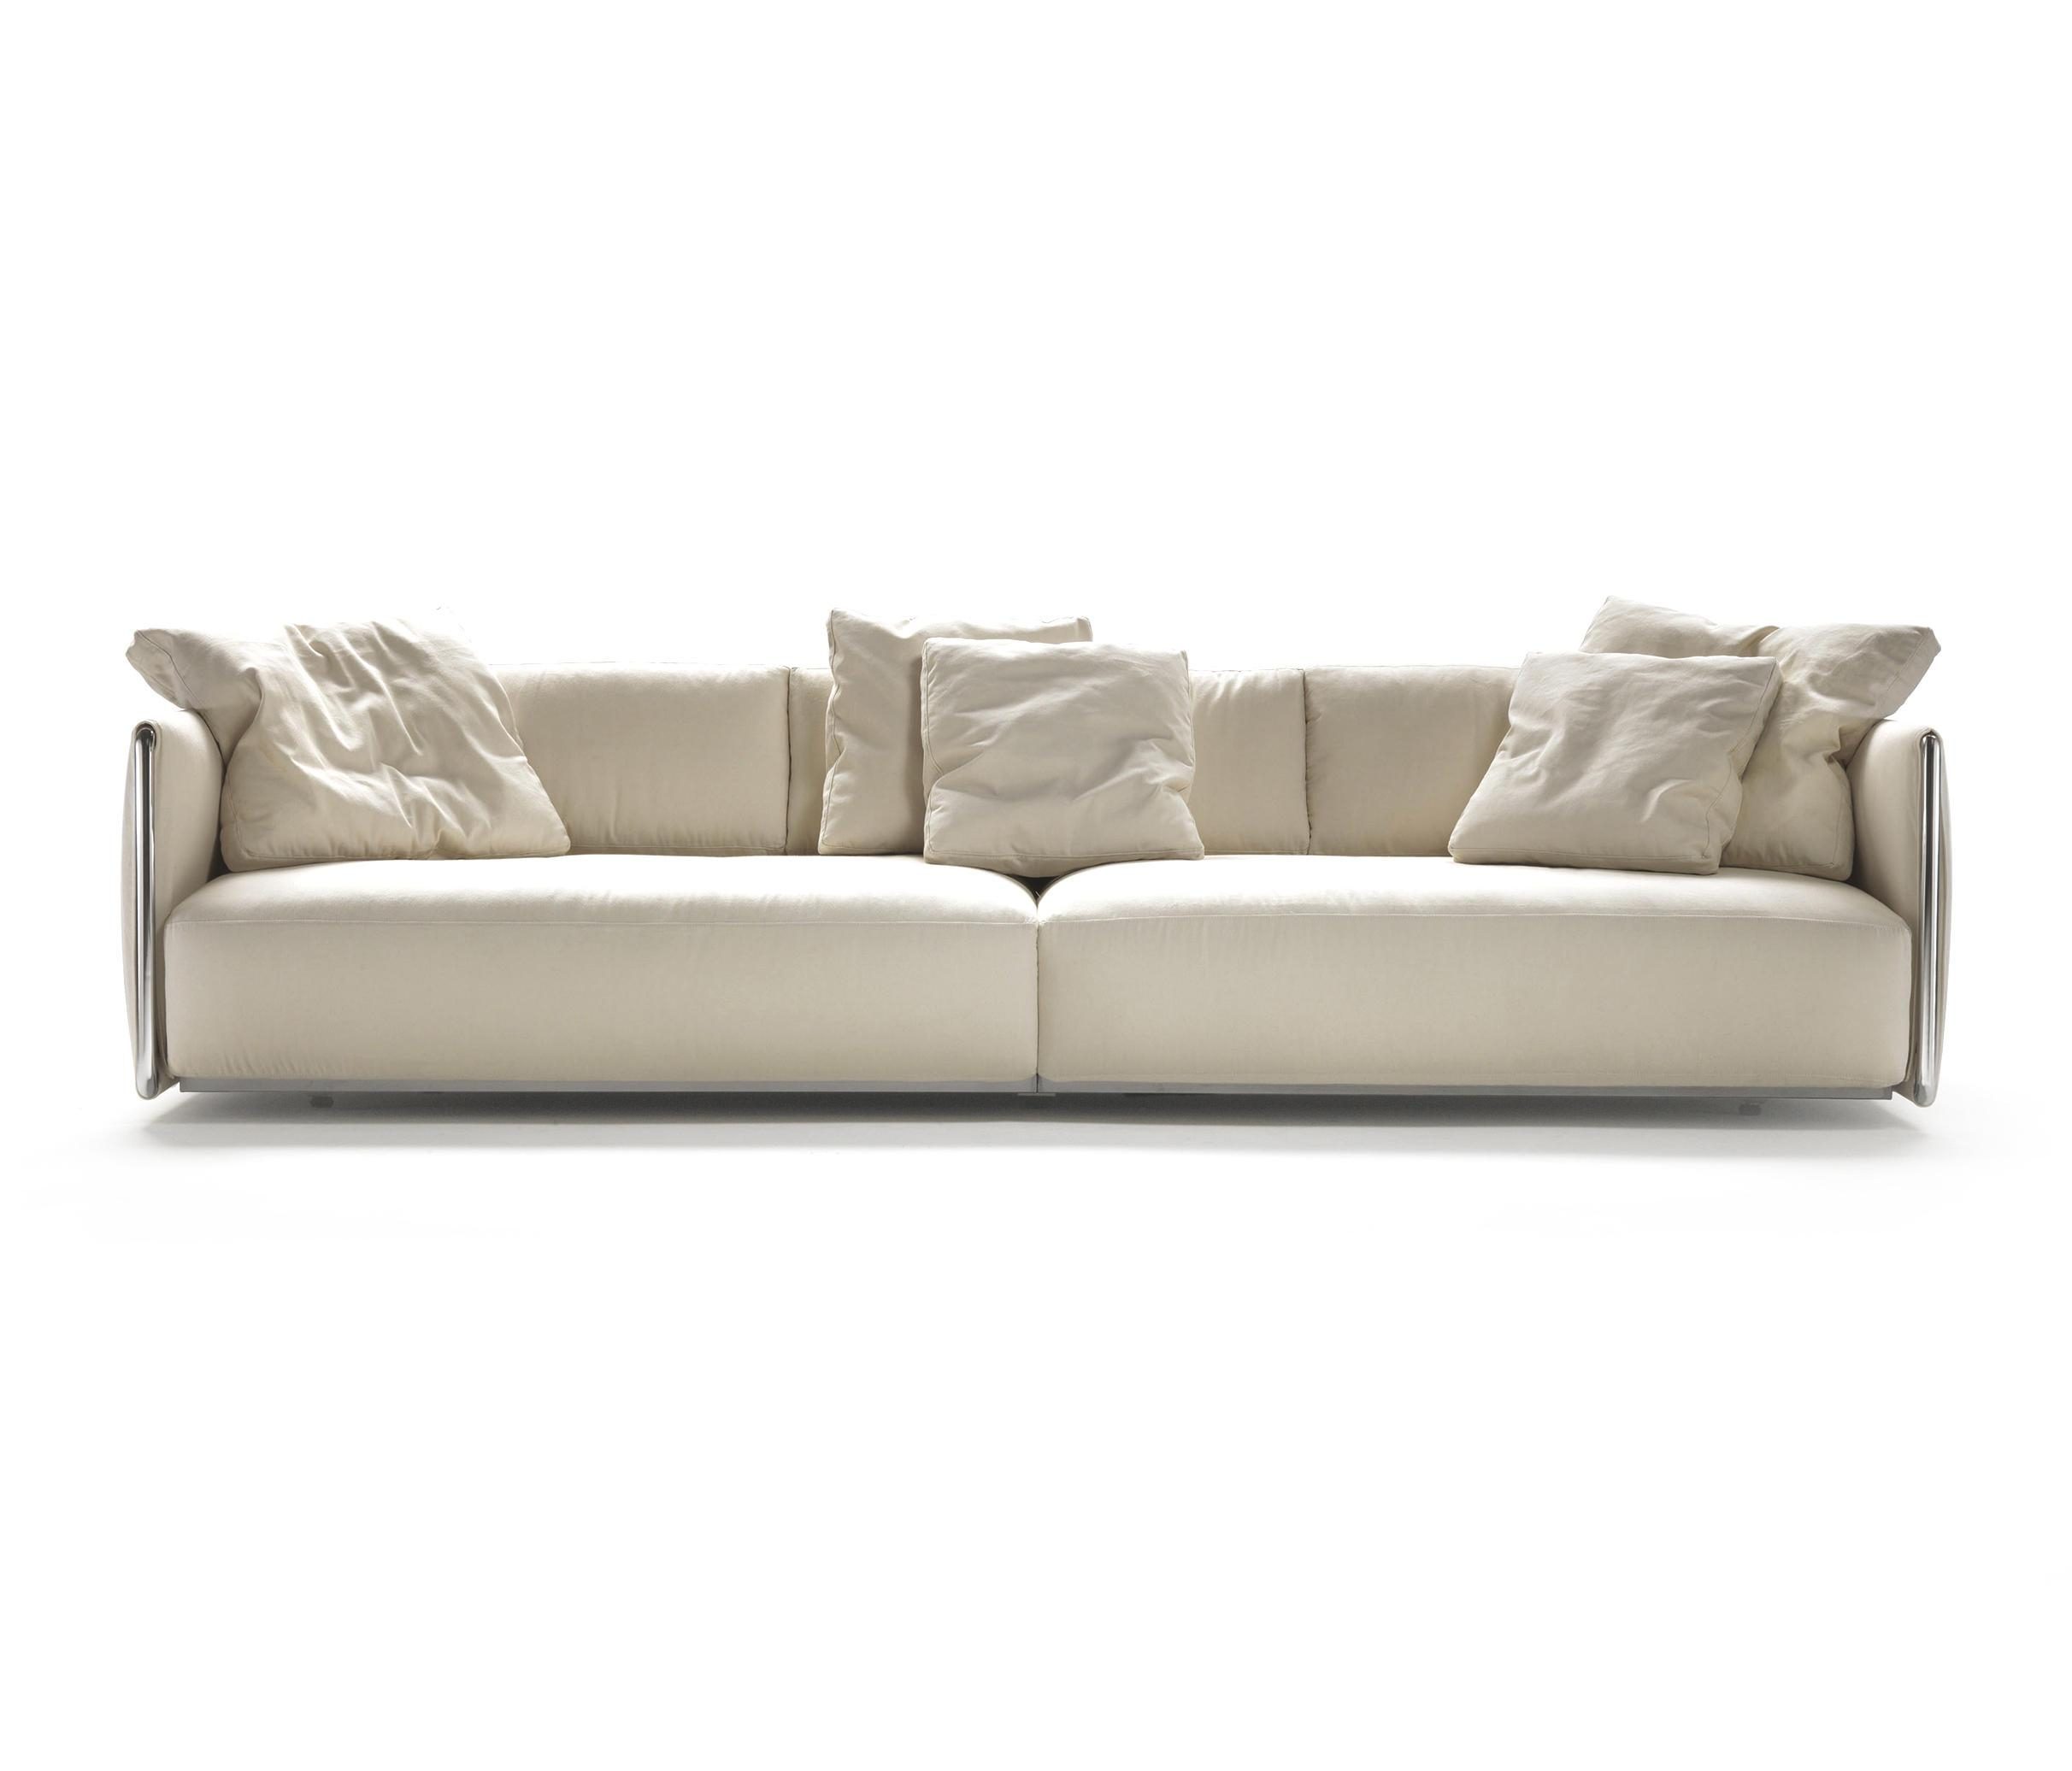 Edmond Sofa – Lounge Sofas From Flexform | Architonic Intended For Flexform Sofas (Image 3 of 20)